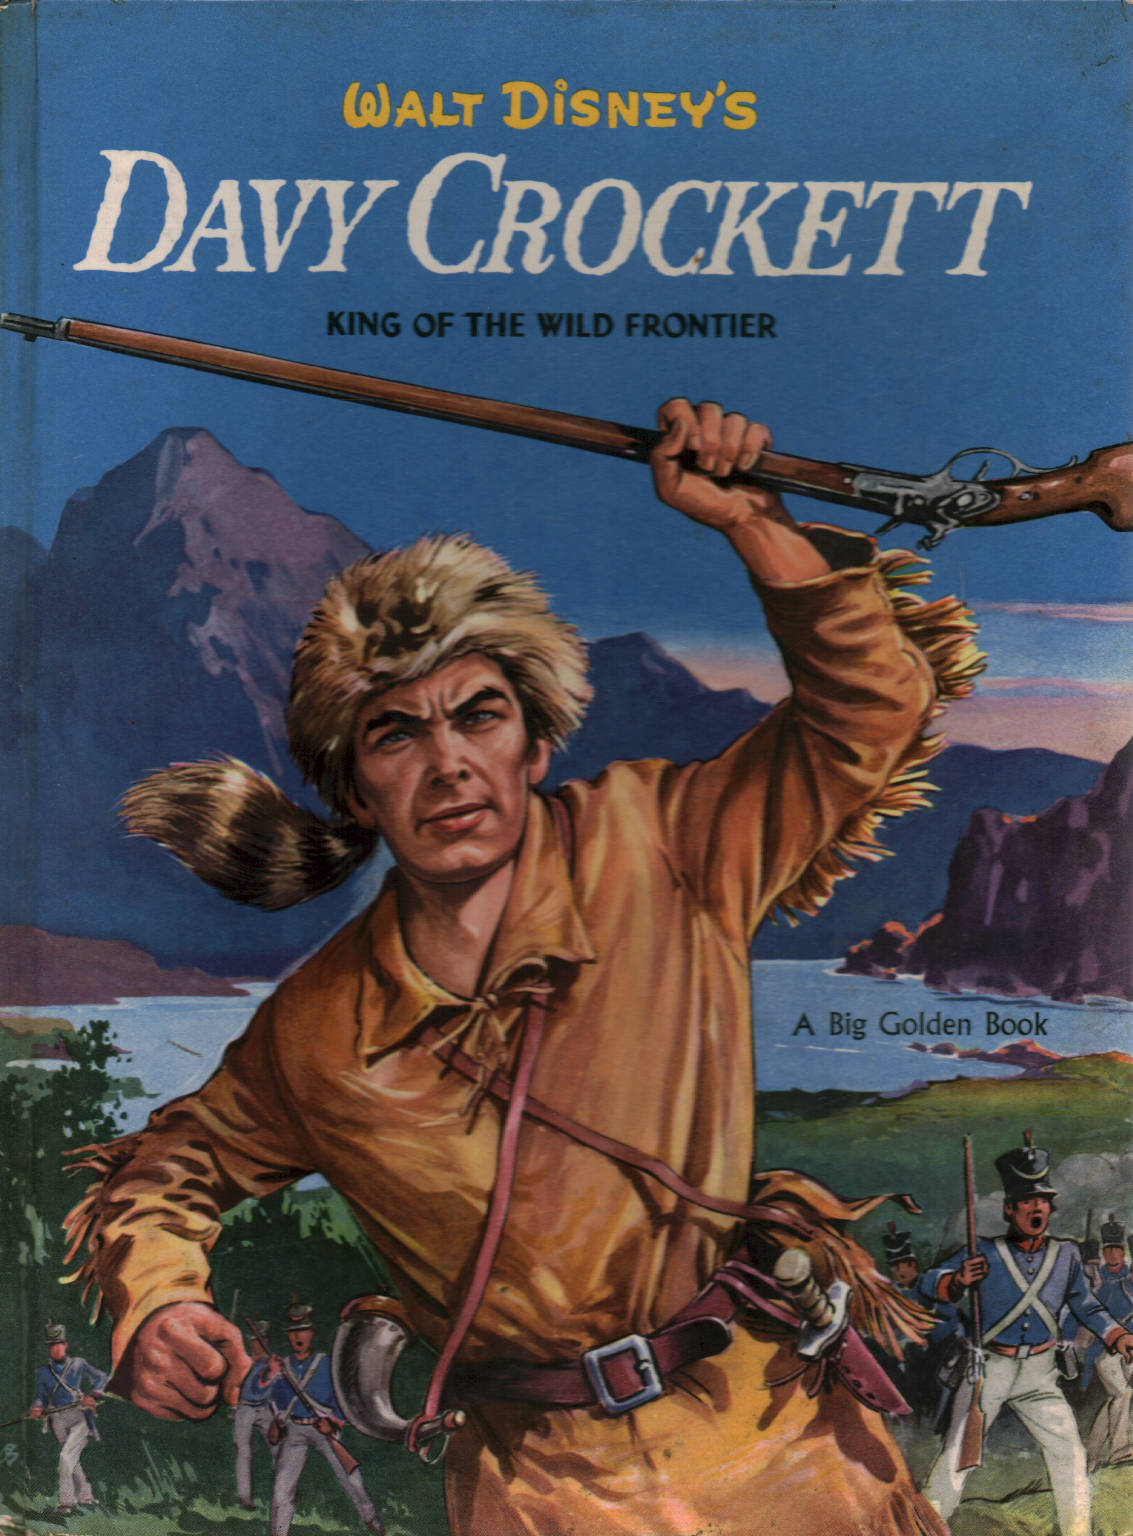 Davy crockett walt disney illustrati libri per for Libri per ragazzi